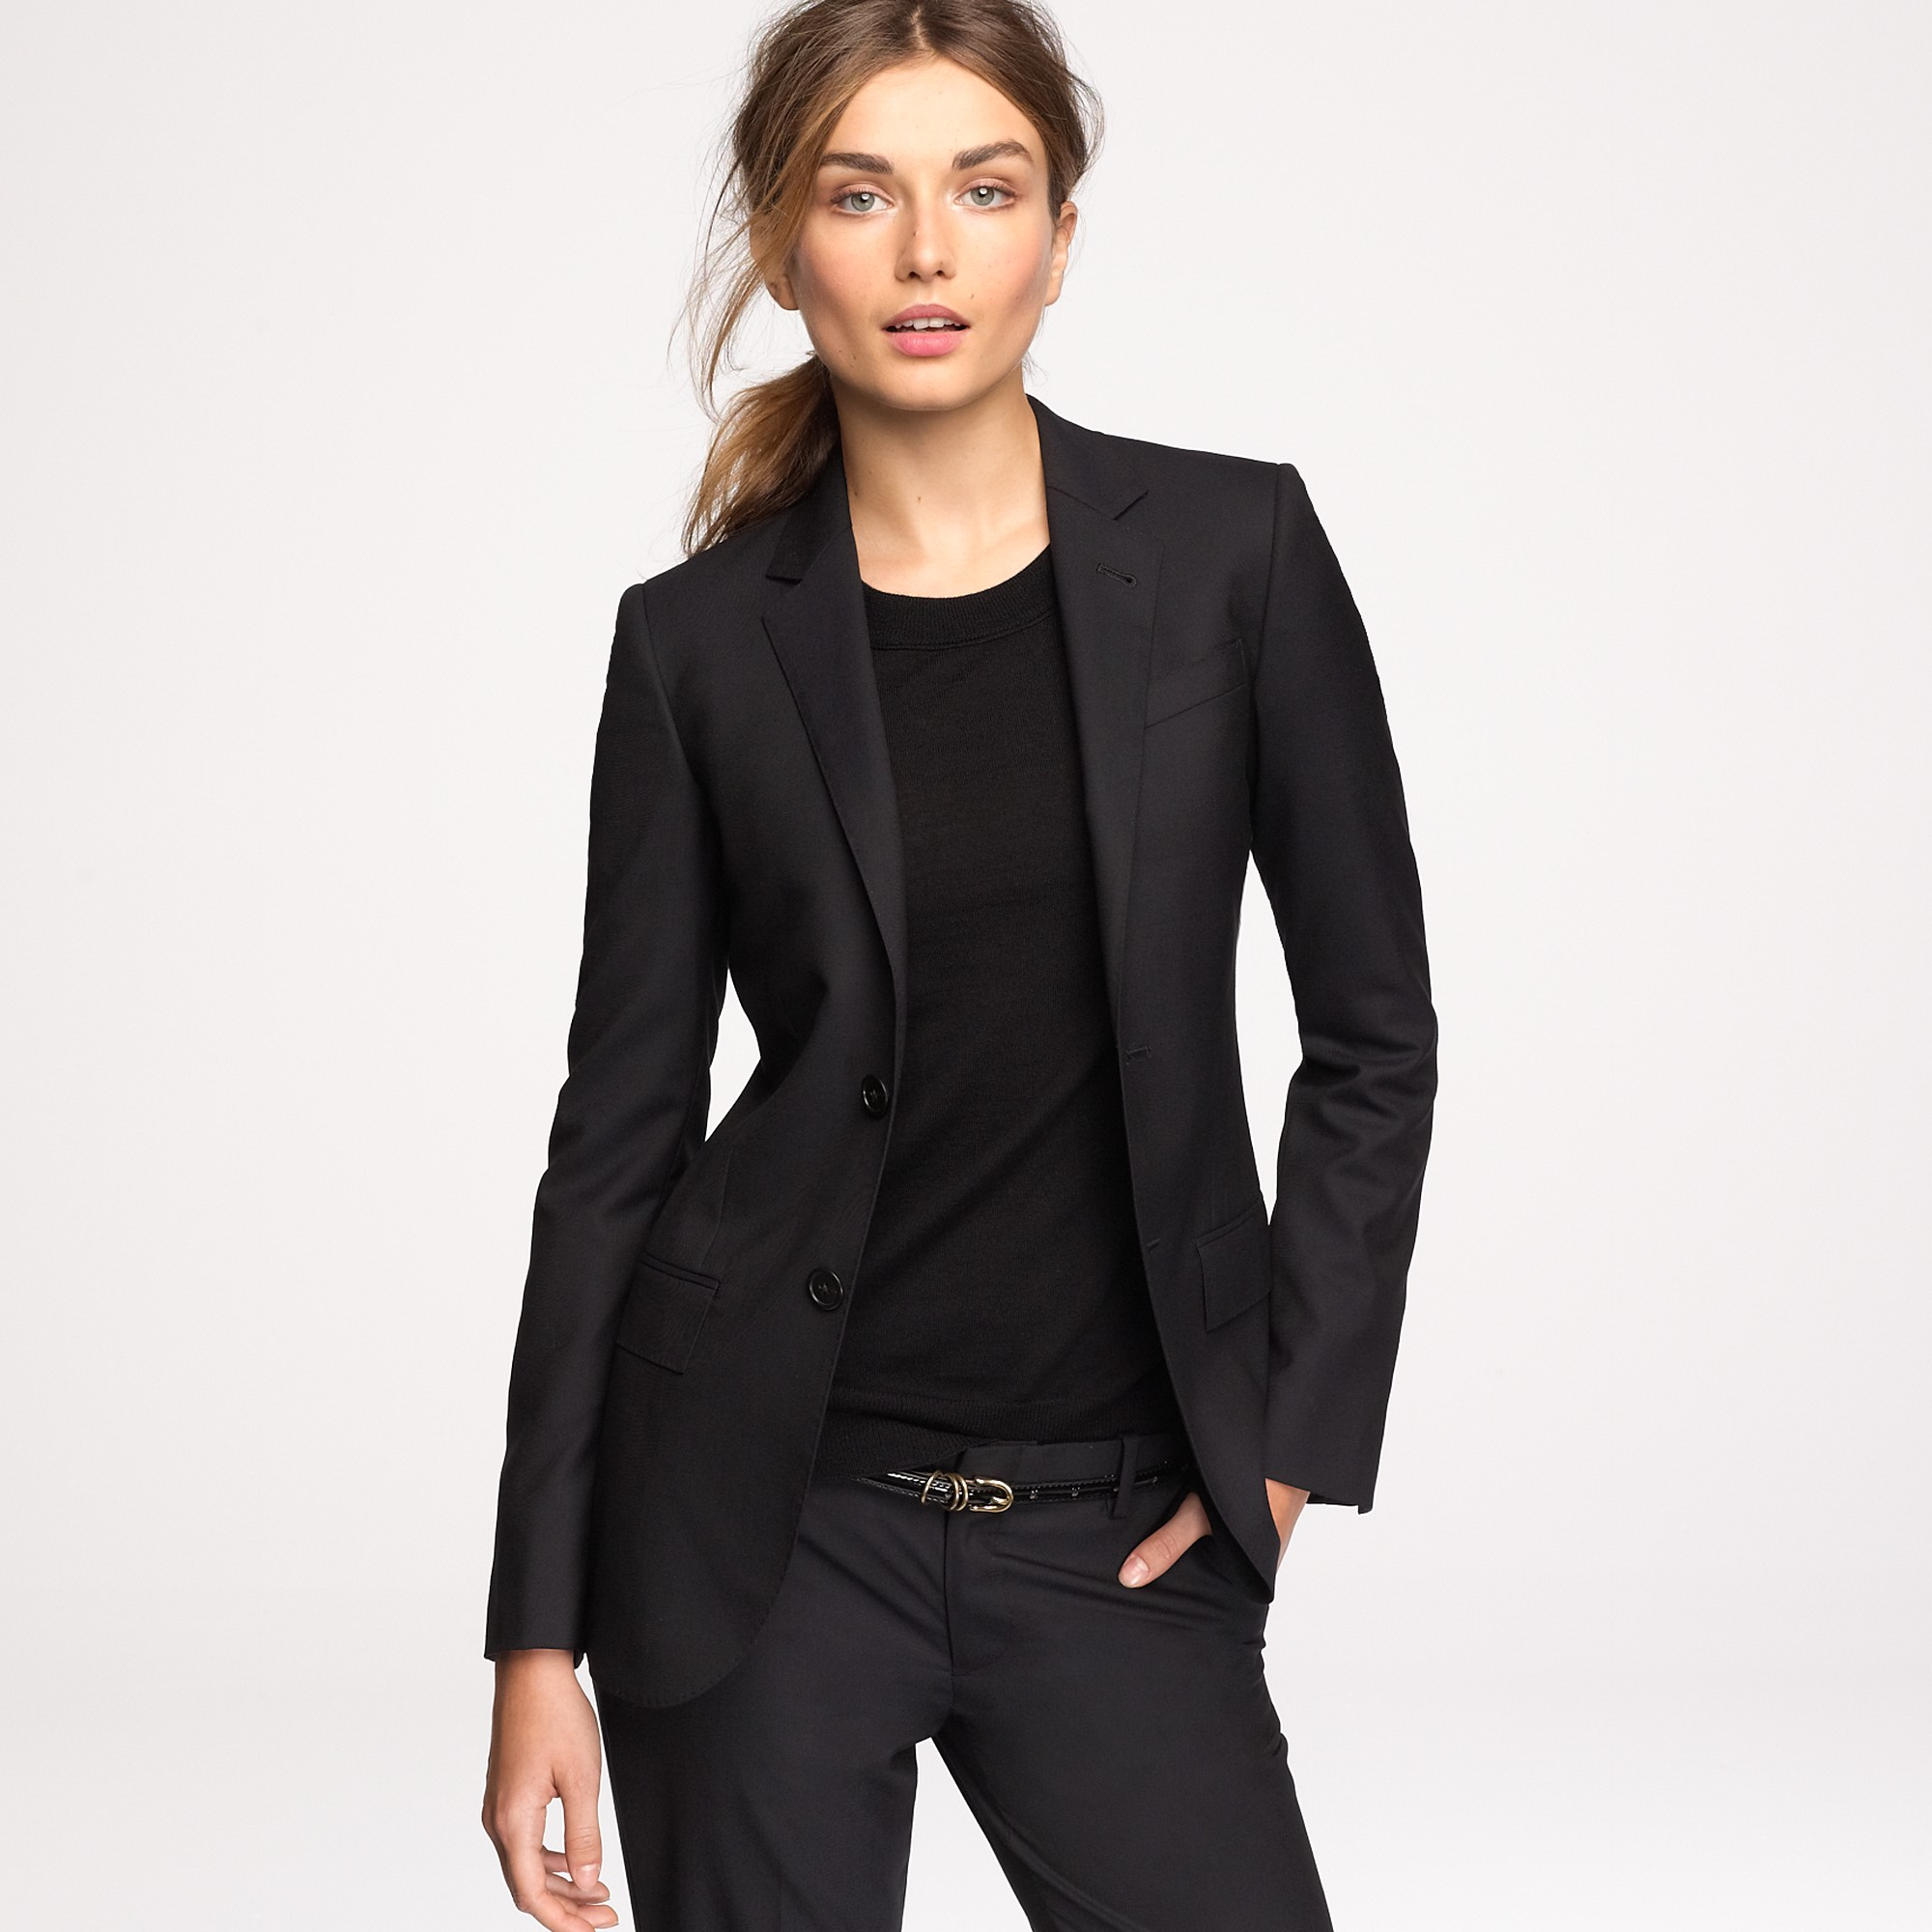 Find black wool blazer women at ShopStyle. Shop the latest collection of black wool blazer women from the most popular stores - all in one place.